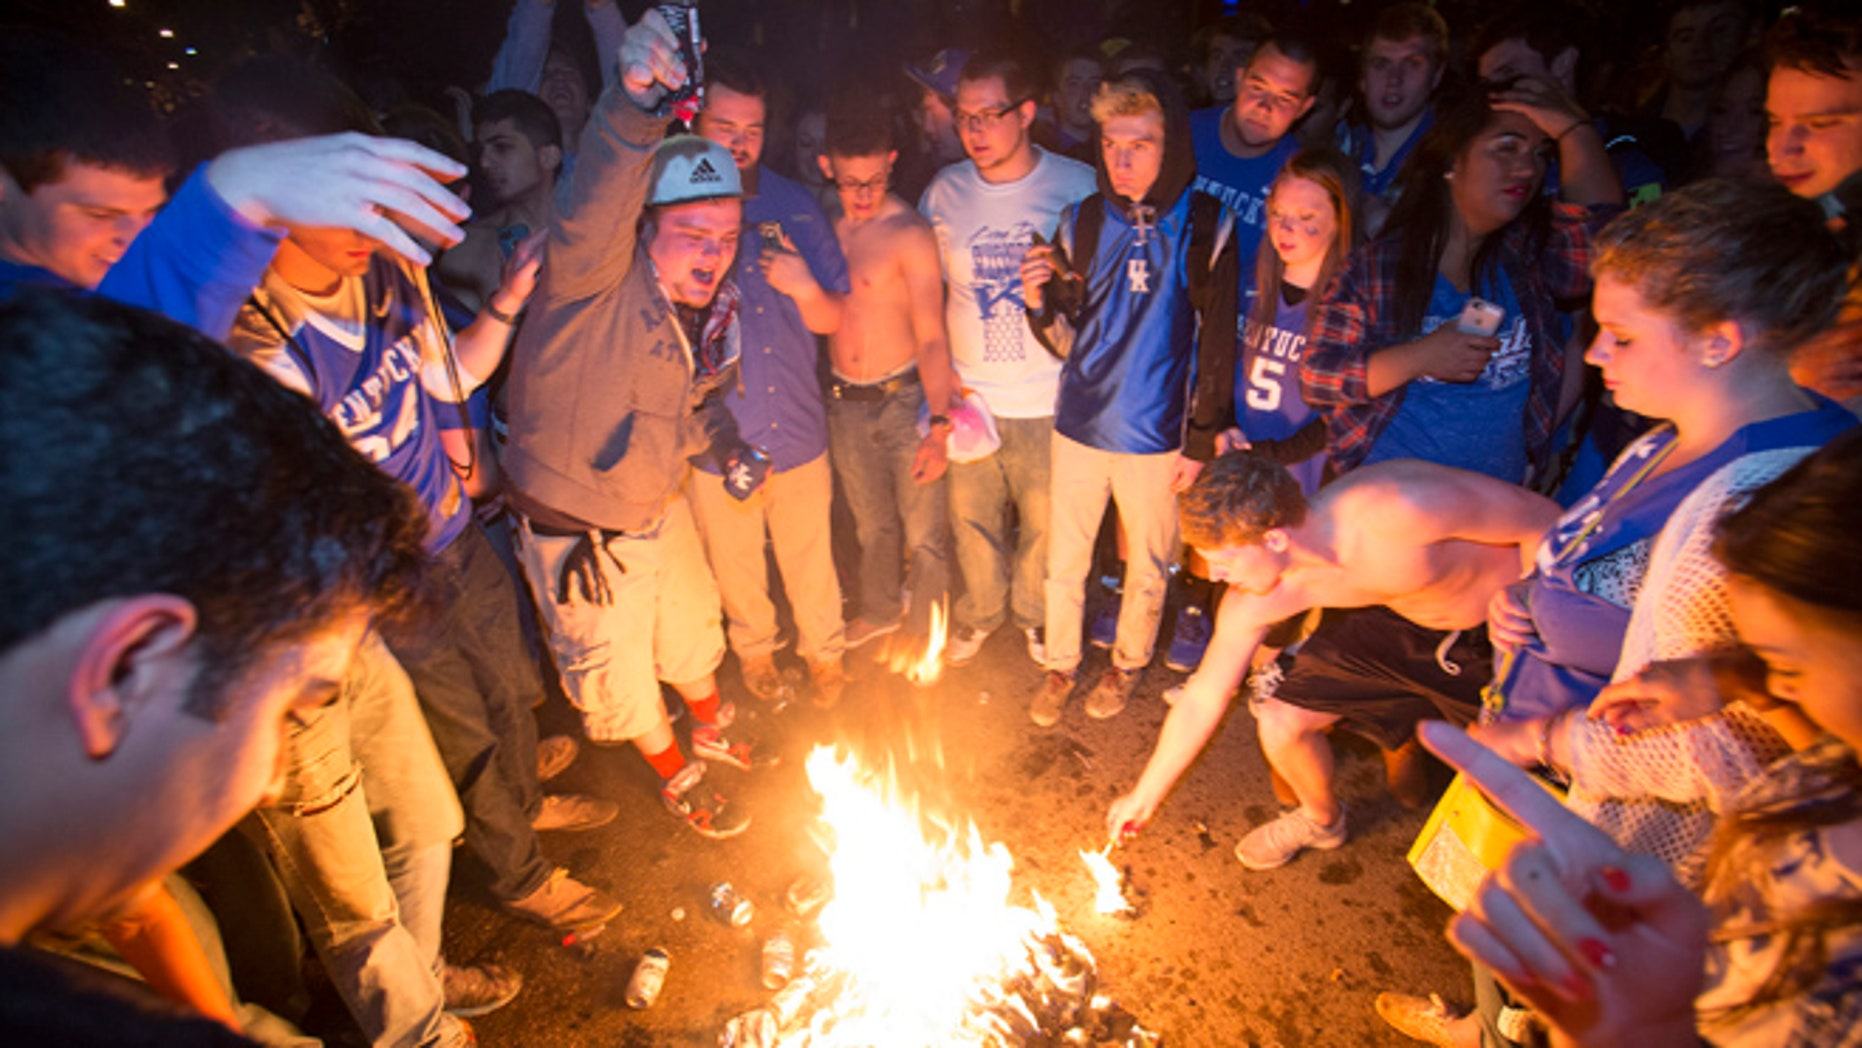 April 4, 2015: Kentucky fans set fire to shirts and hoodies as they gather near the University of Kentucky campus, in Lexington, Ky., after Wisconsin defeated Kentucky 71-64 in the semifinals of the NCAA men's college basketball tournament Final Four.